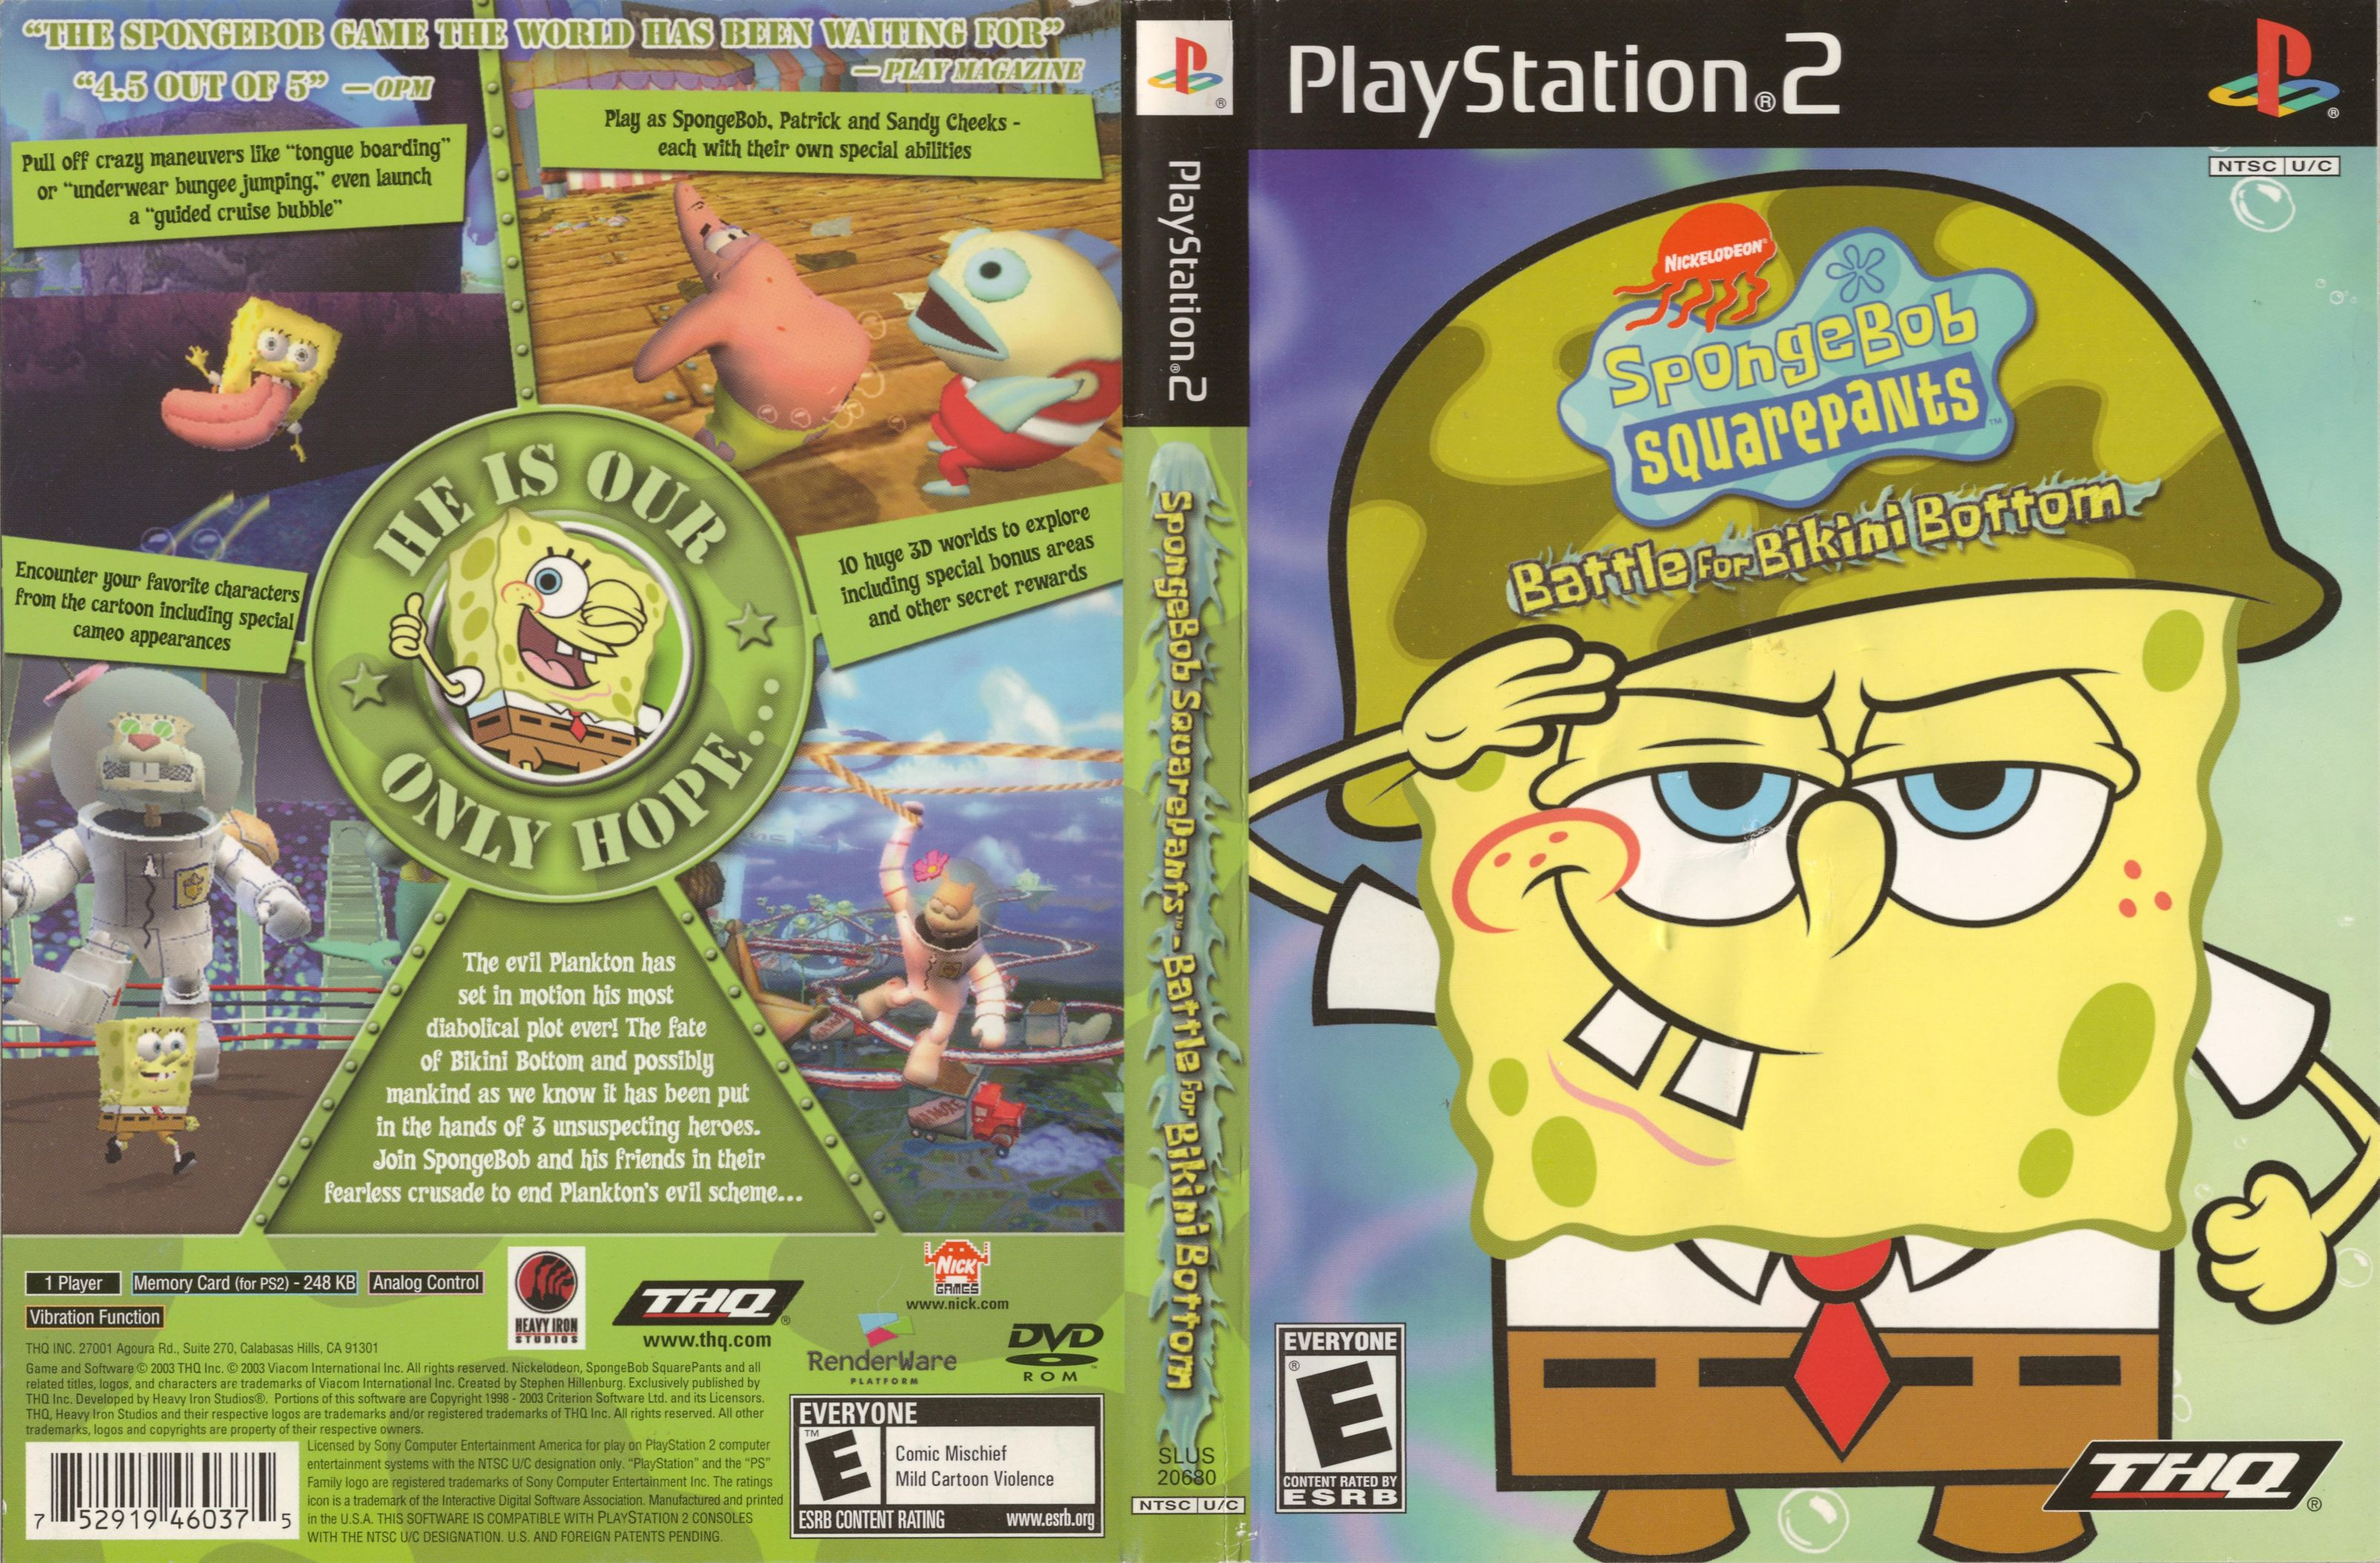 Scandal! Battle bikini bottom cheat ps2 spongebob squarepants